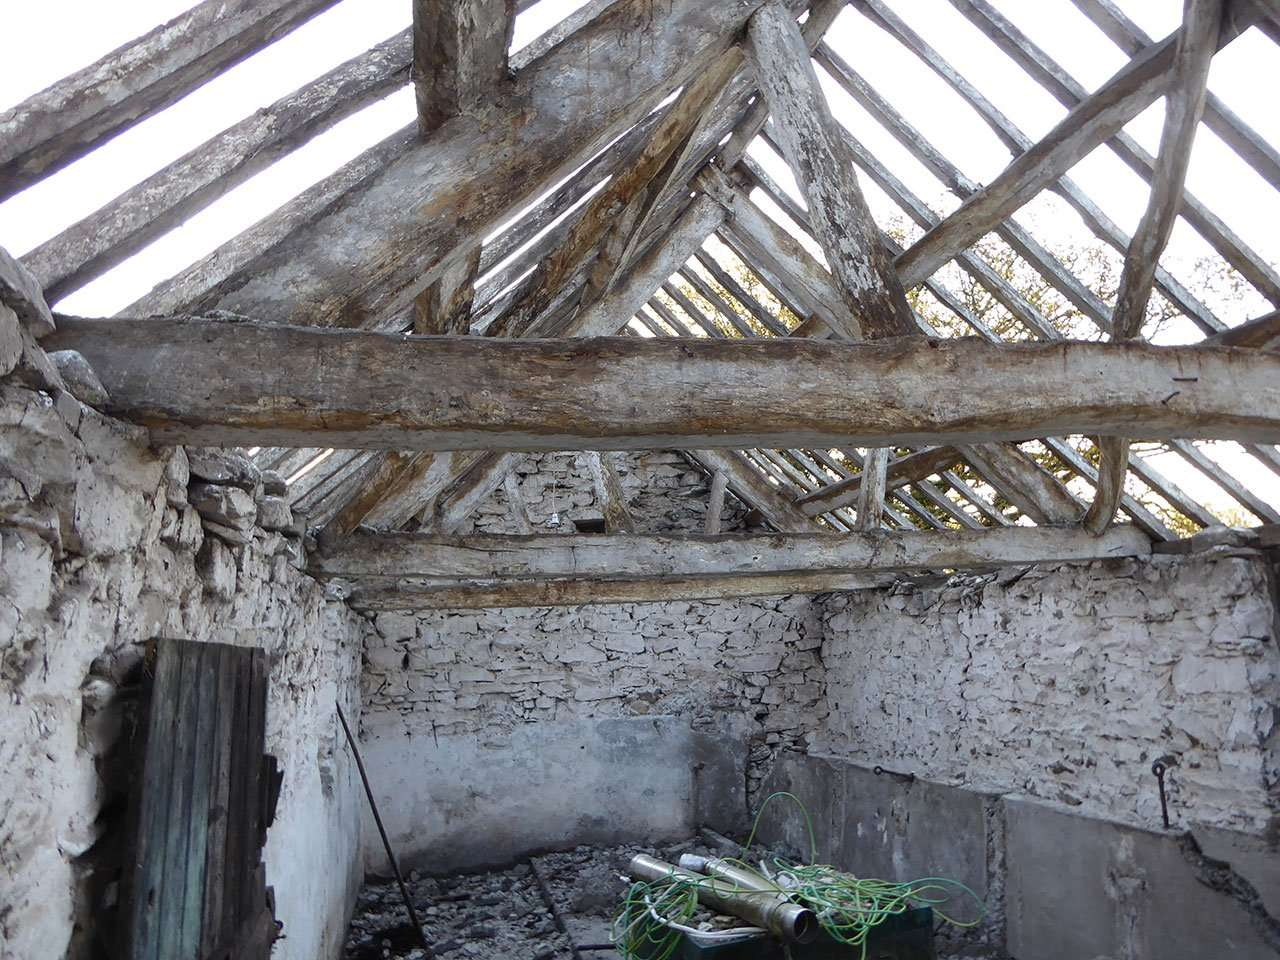 Pen-y-Cefn Uchaf - Roof Timbers in 2018